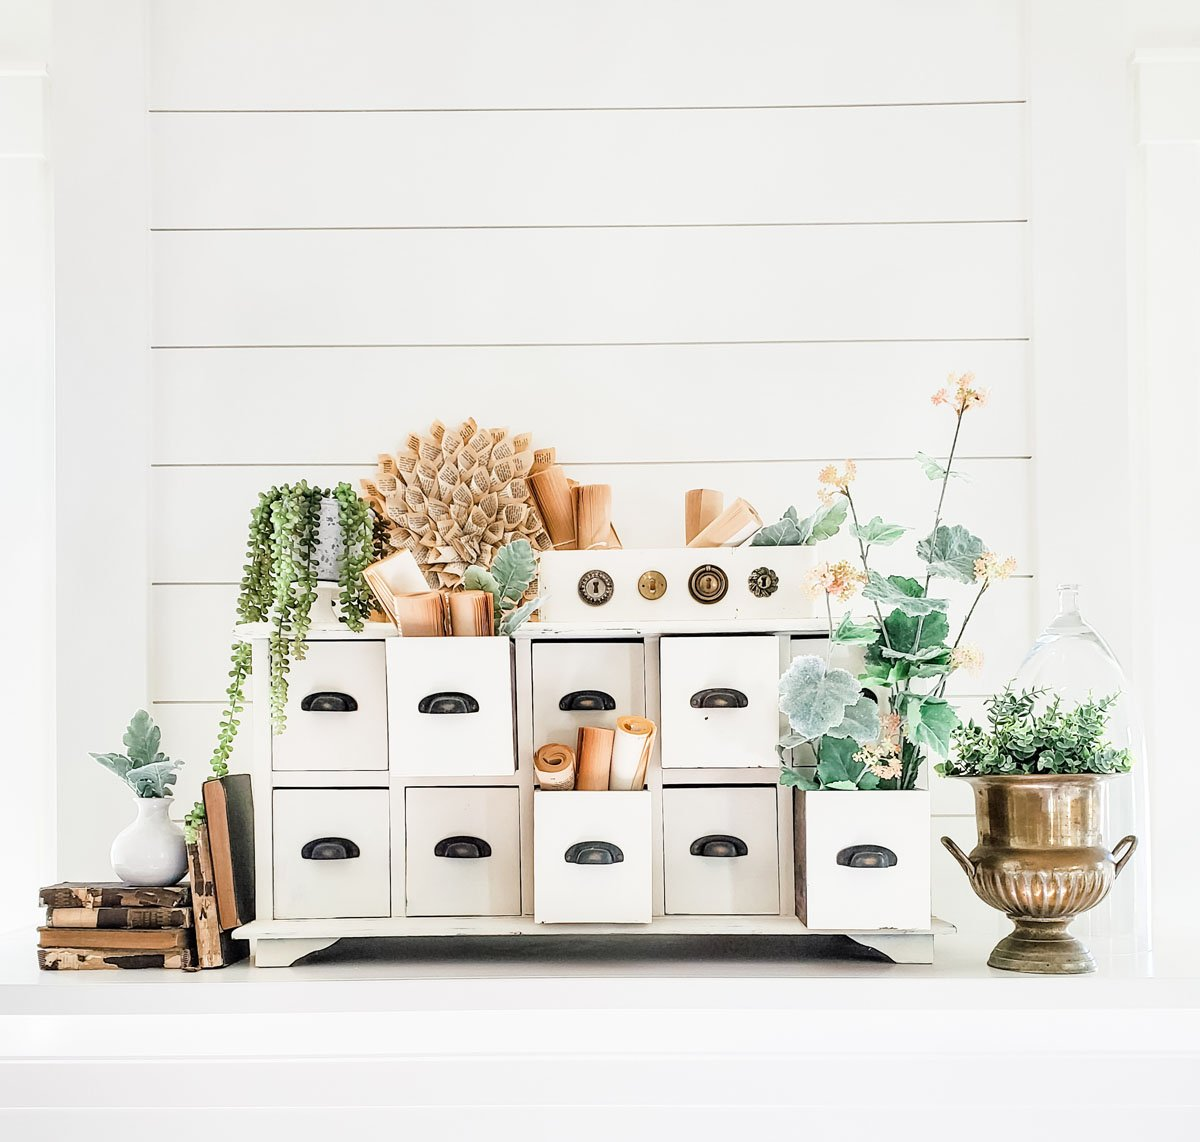 Easy ways to decorate with plants